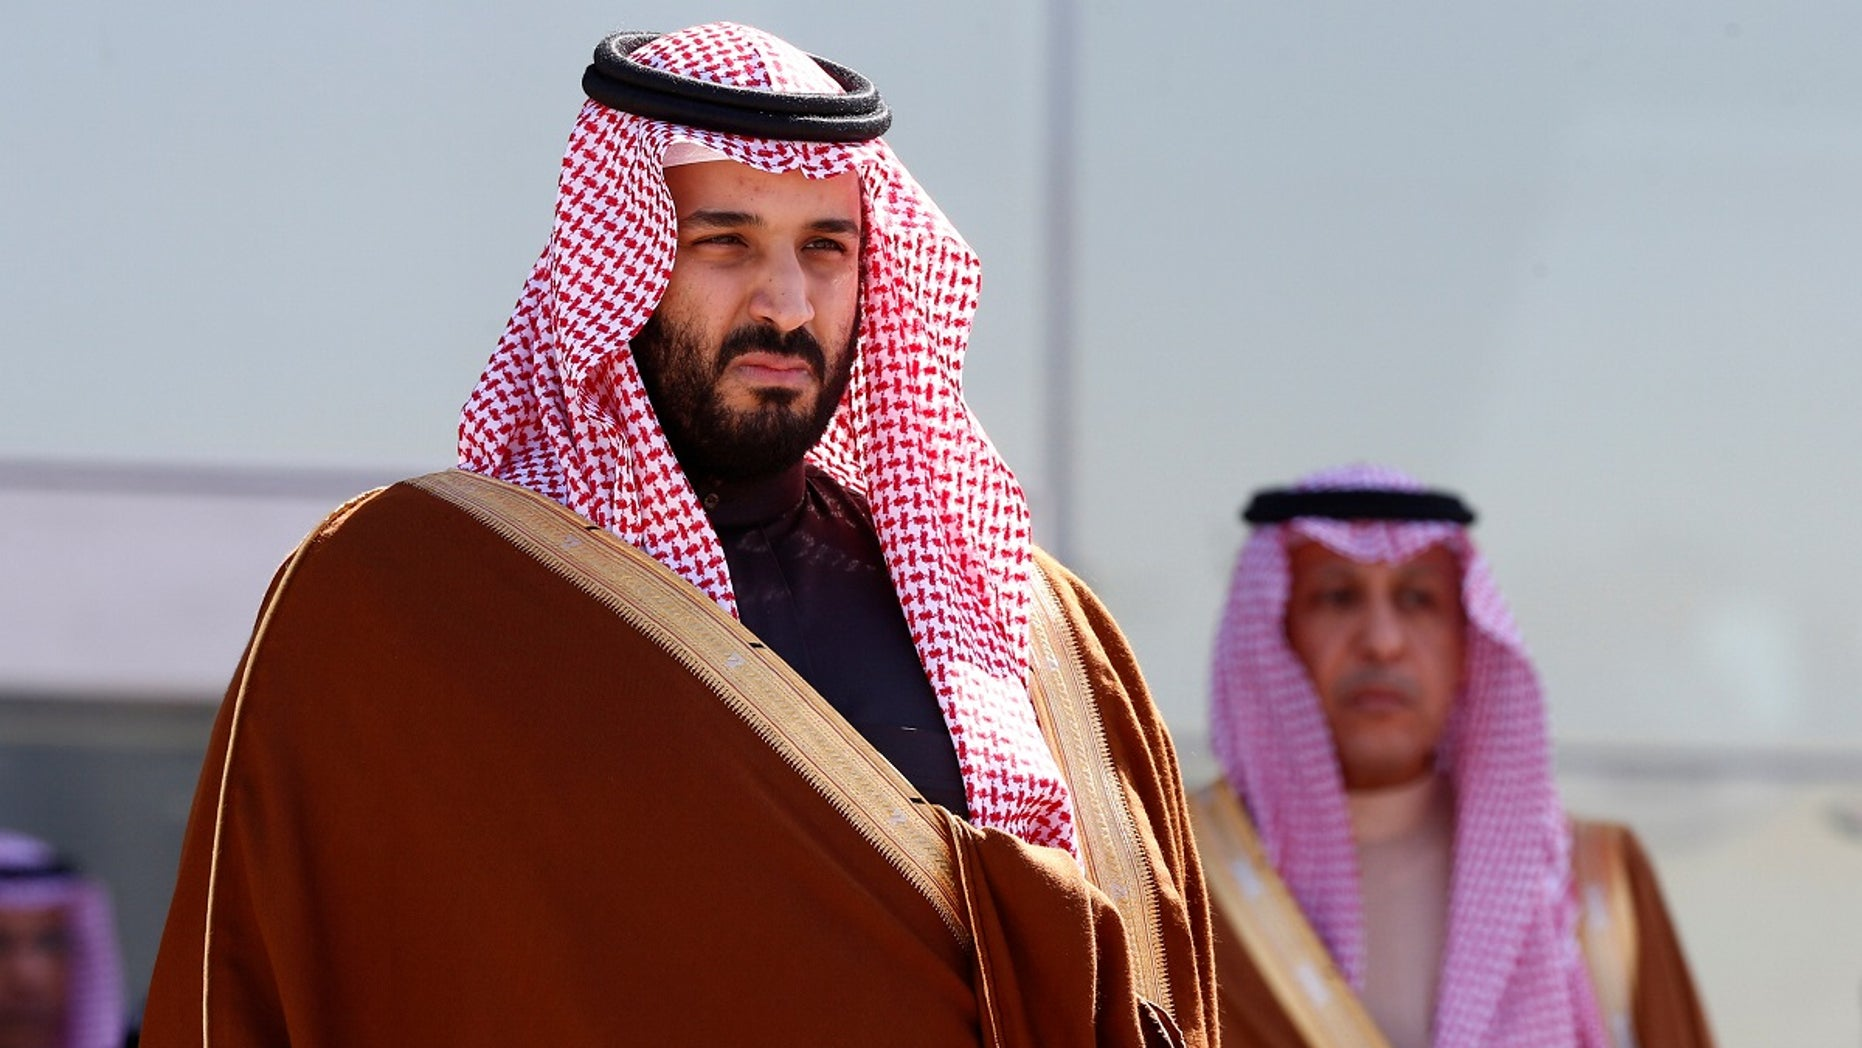 Saudi Deputy Crown Prince Mohammed bin Salman attends a graduation ceremony and air show marking the 50th anniversary of the founding of King Faisal Air College in Riyadh, Saudi Arabia, January 25, 2017.